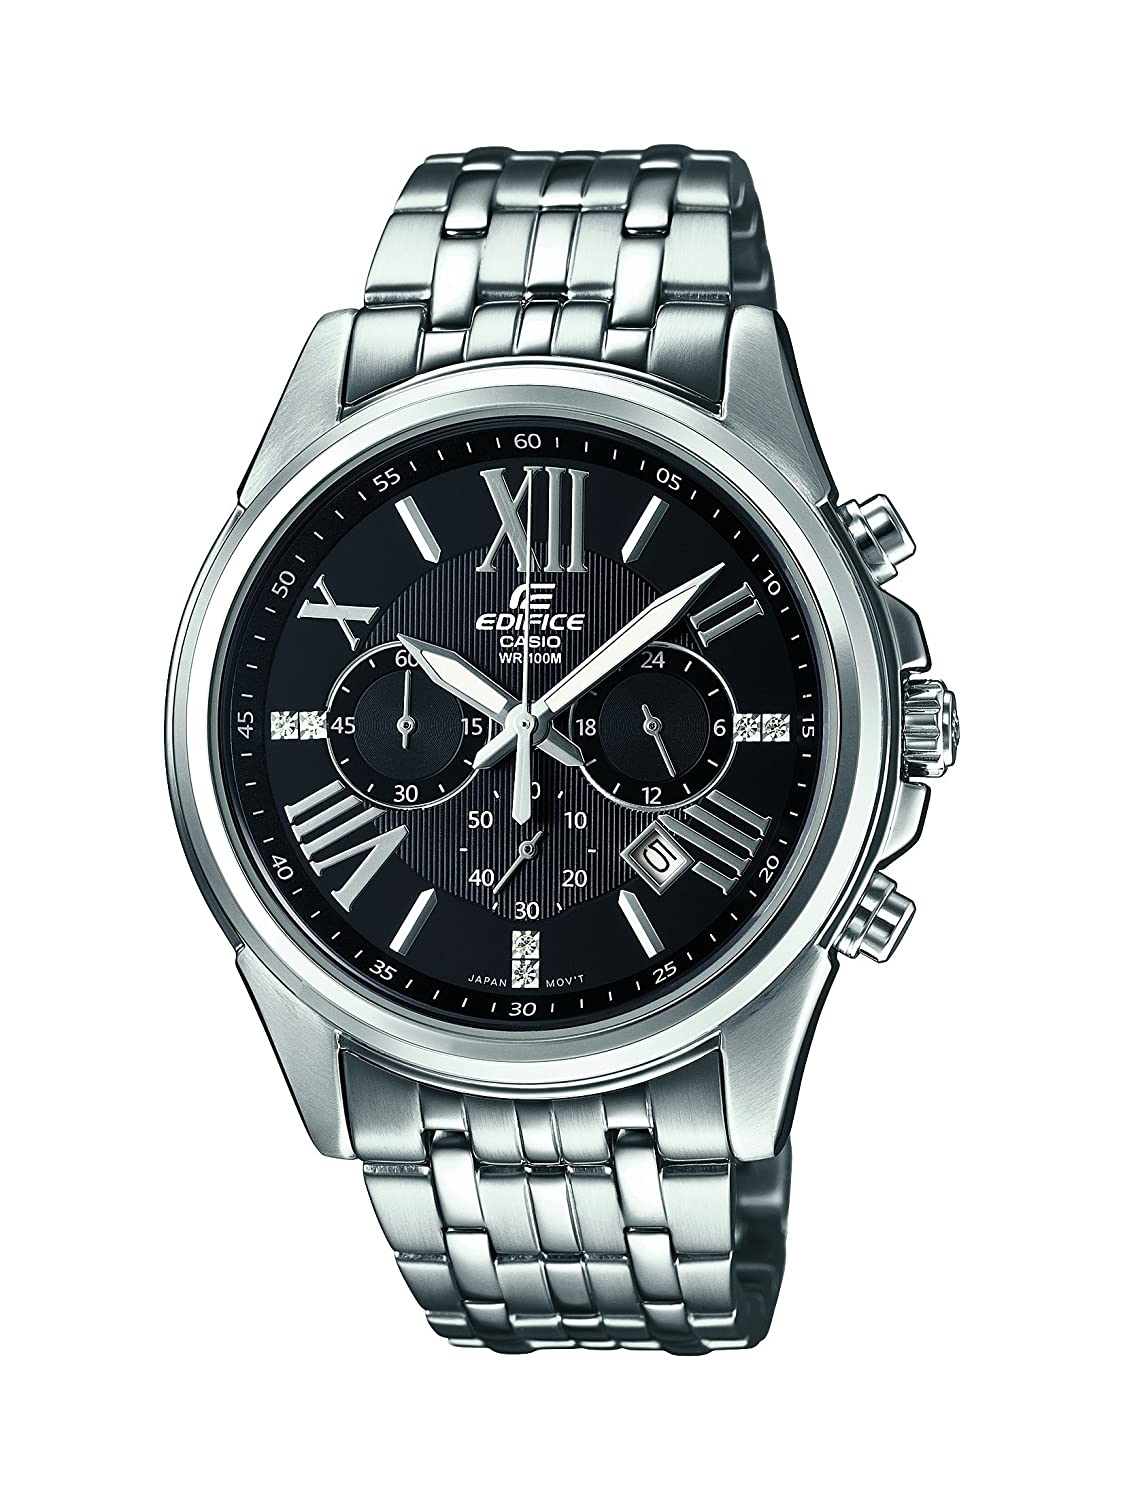 Casio Edifice Chronograph Watch Efr538d1avuef In Jewellery Efr 538d 1av Zegarek 1avuef Mski Kwarcowy Wskazwkowy